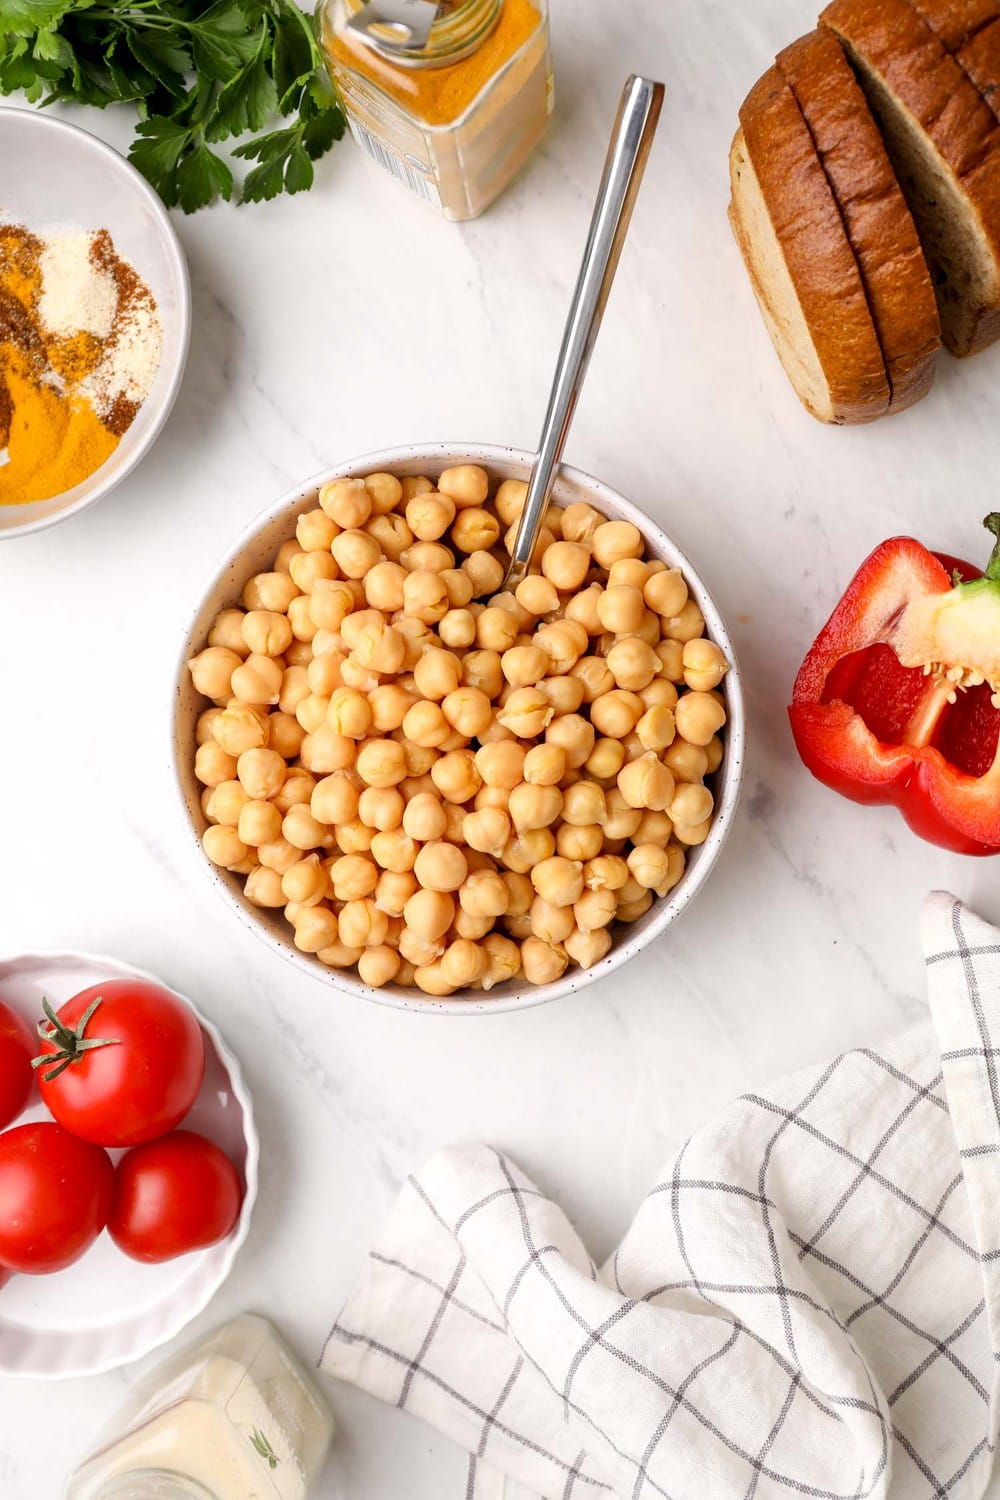 The ingredients needed to make chickpea scramble.